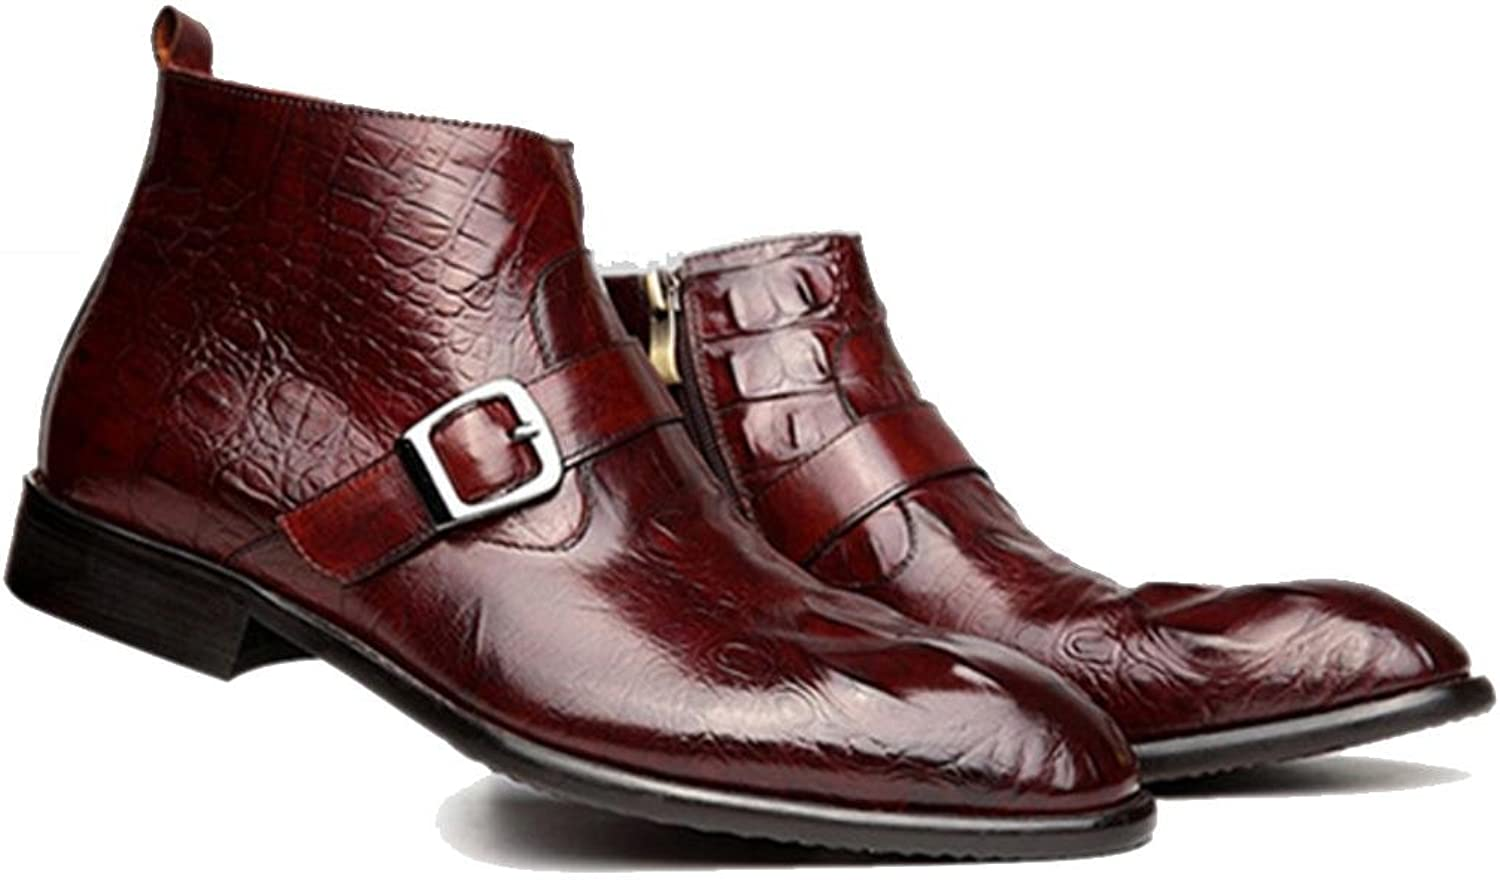 's Europe Wzg Leather Men Boots Martin LMqUpSzVG